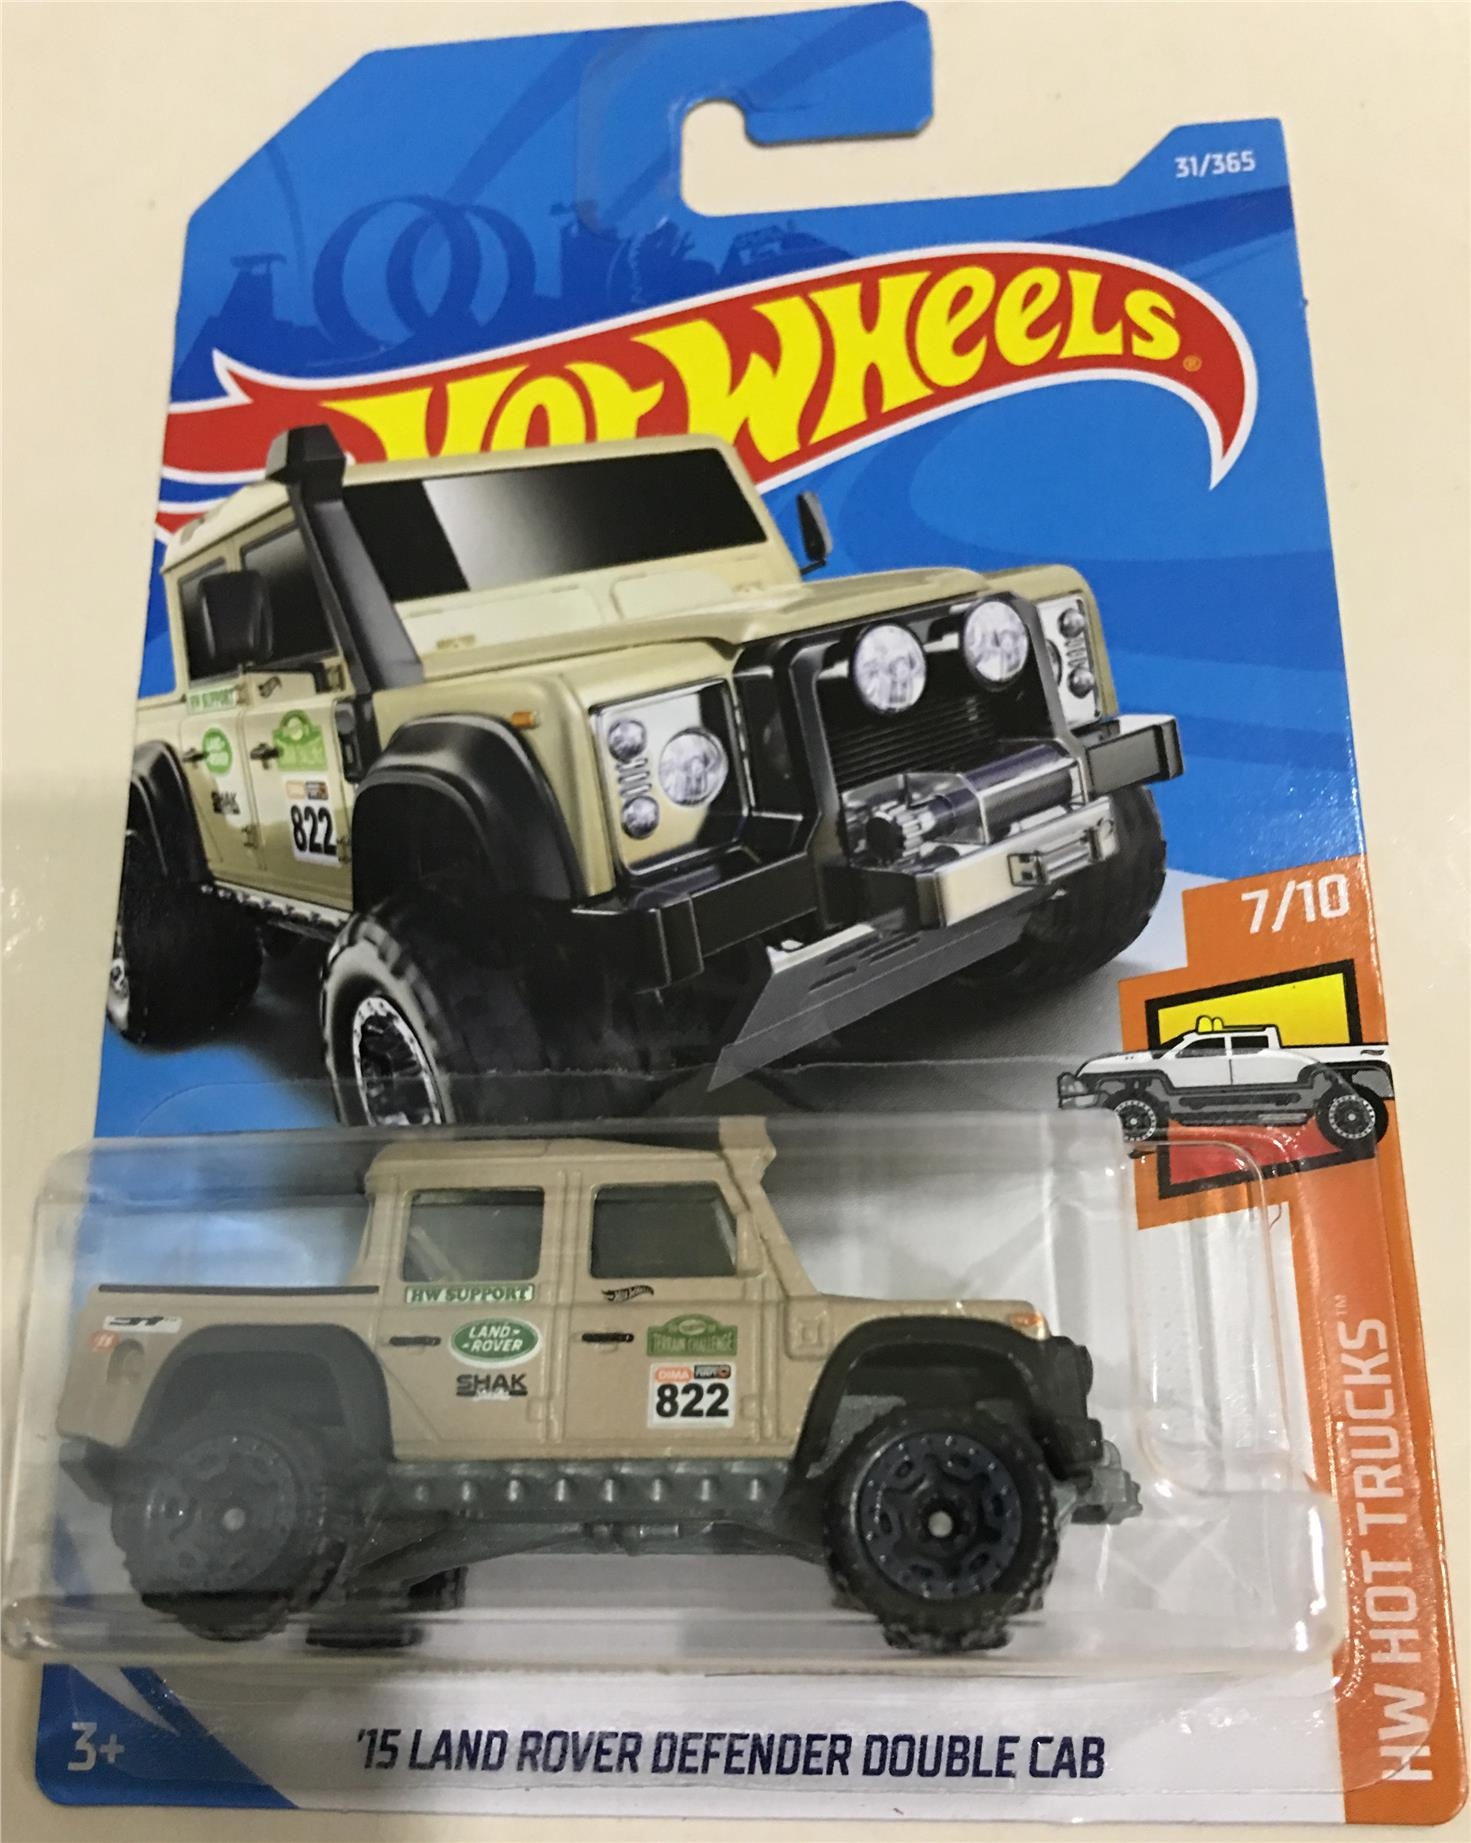 Hot Wheels 75 Land Rover Defender Do End 9 25 2018 9 15 Pm